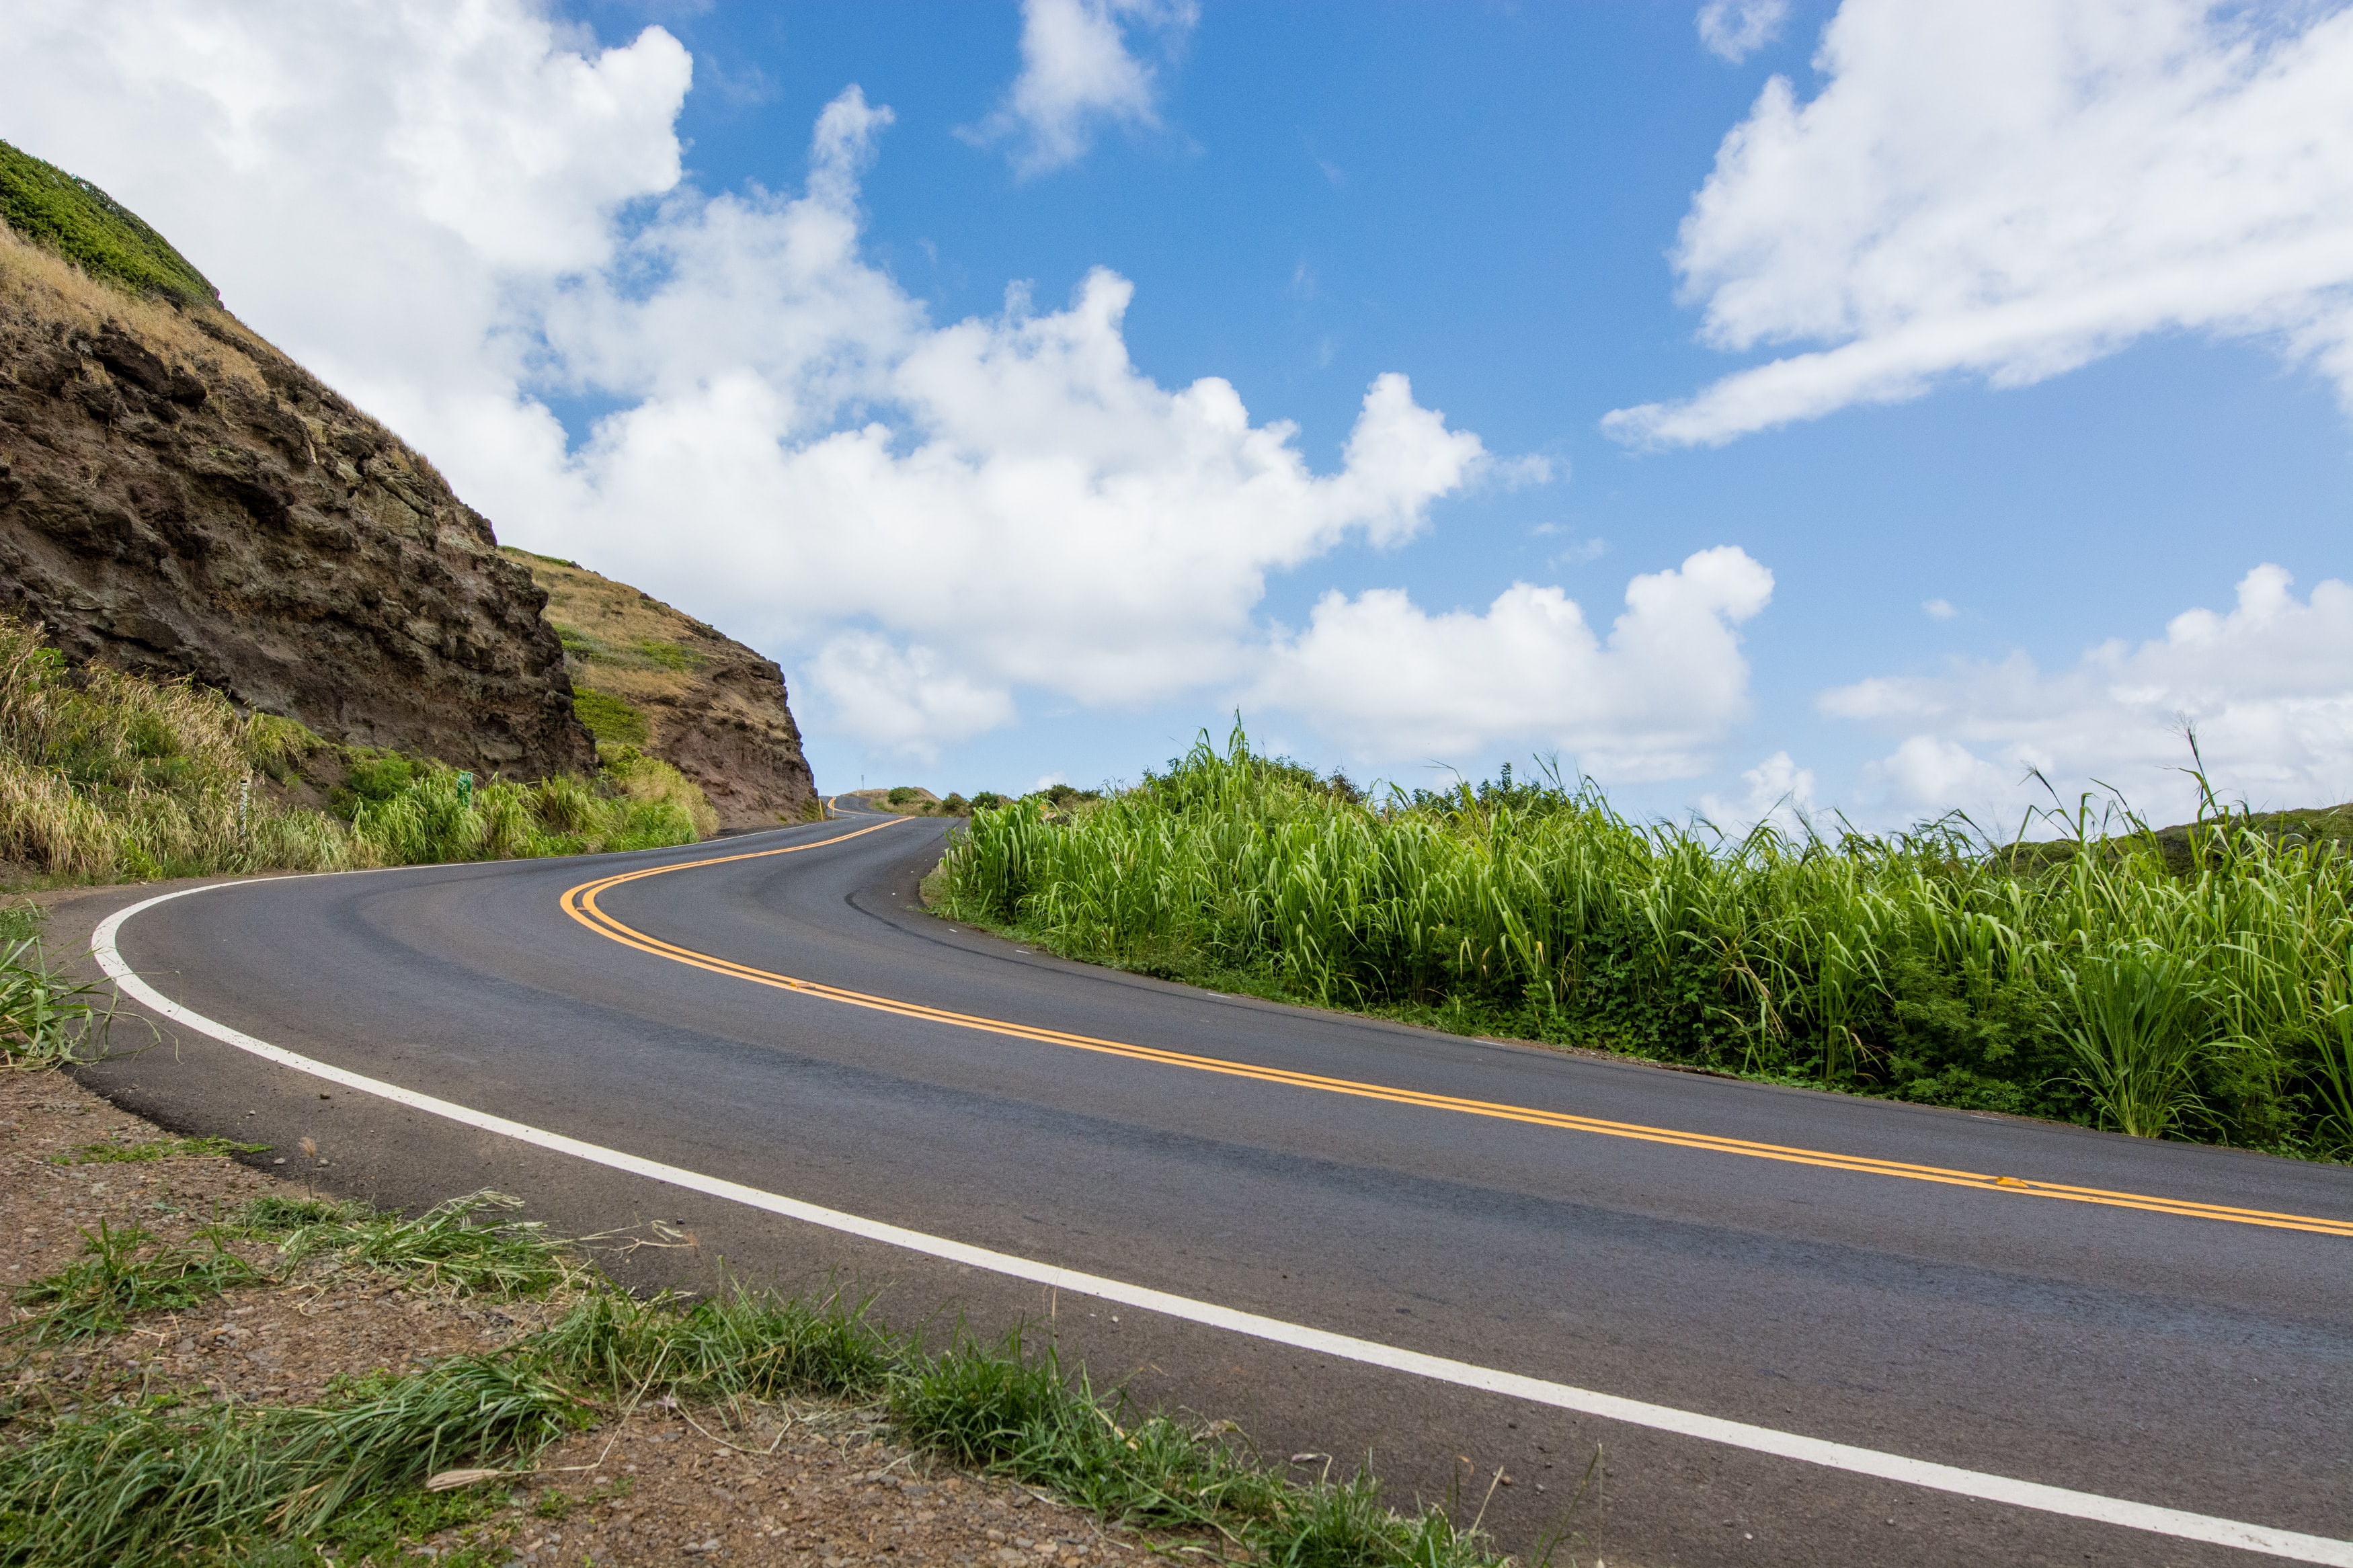 A winding road along the side of a cliff and grass on the other side in Maui